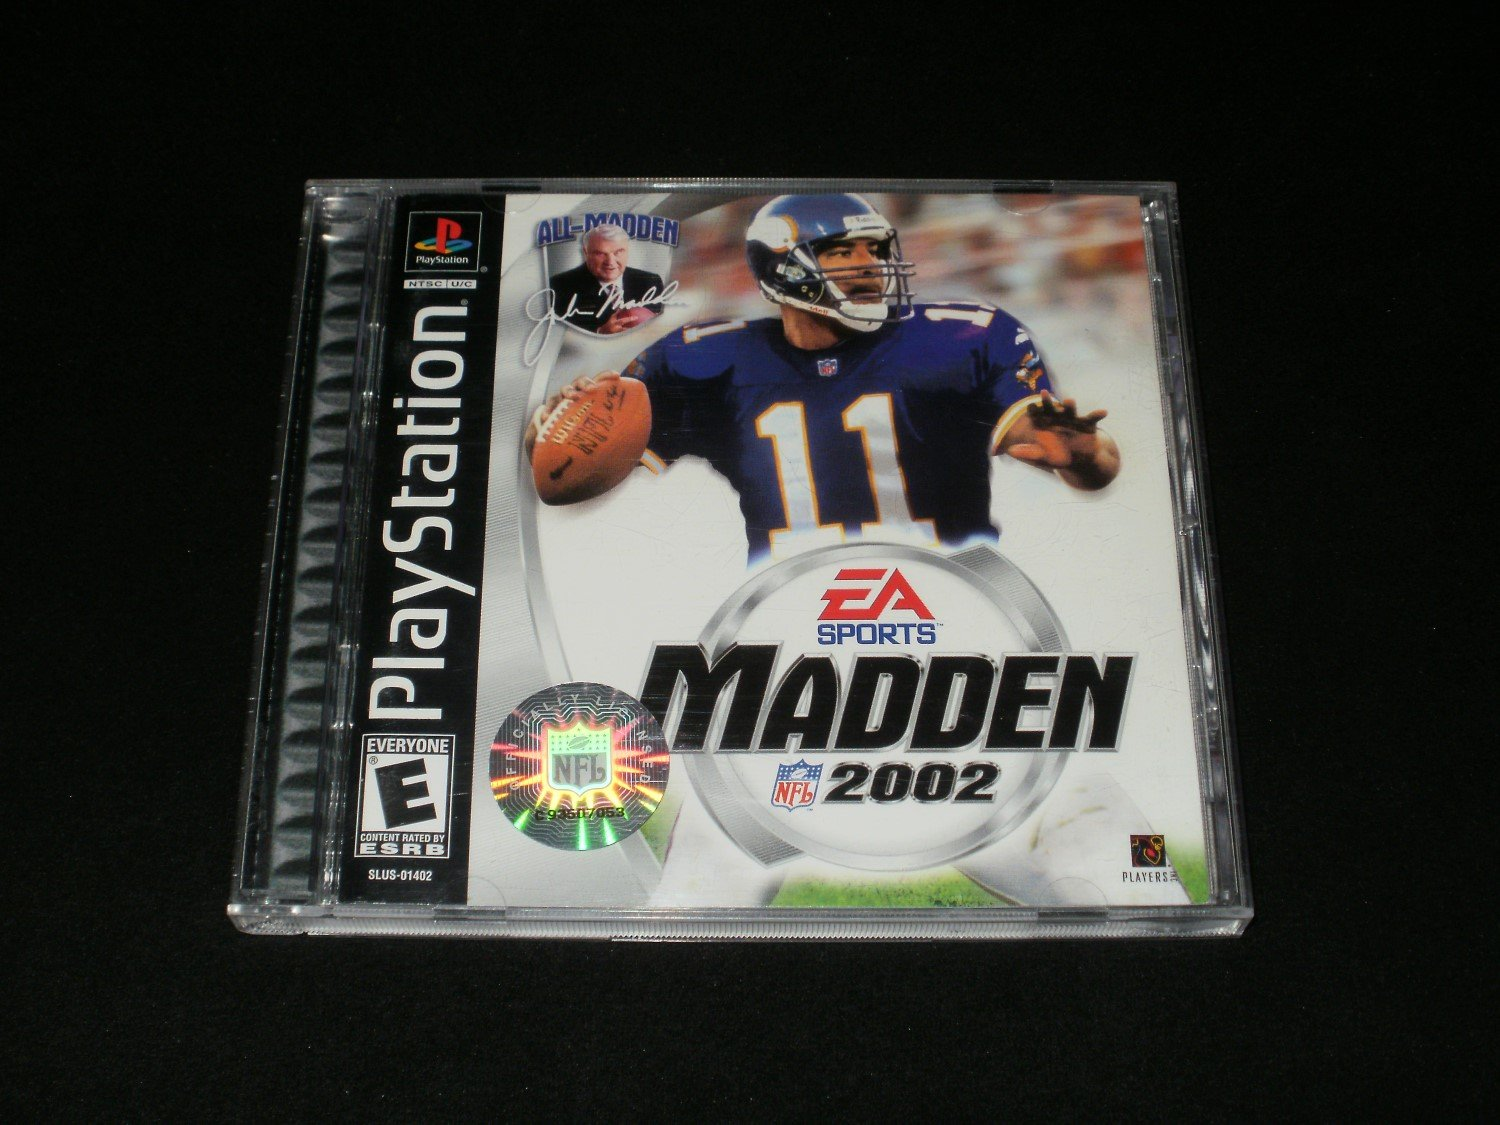 Madden NFL 2002 - Sony PS1 - Complete CIB